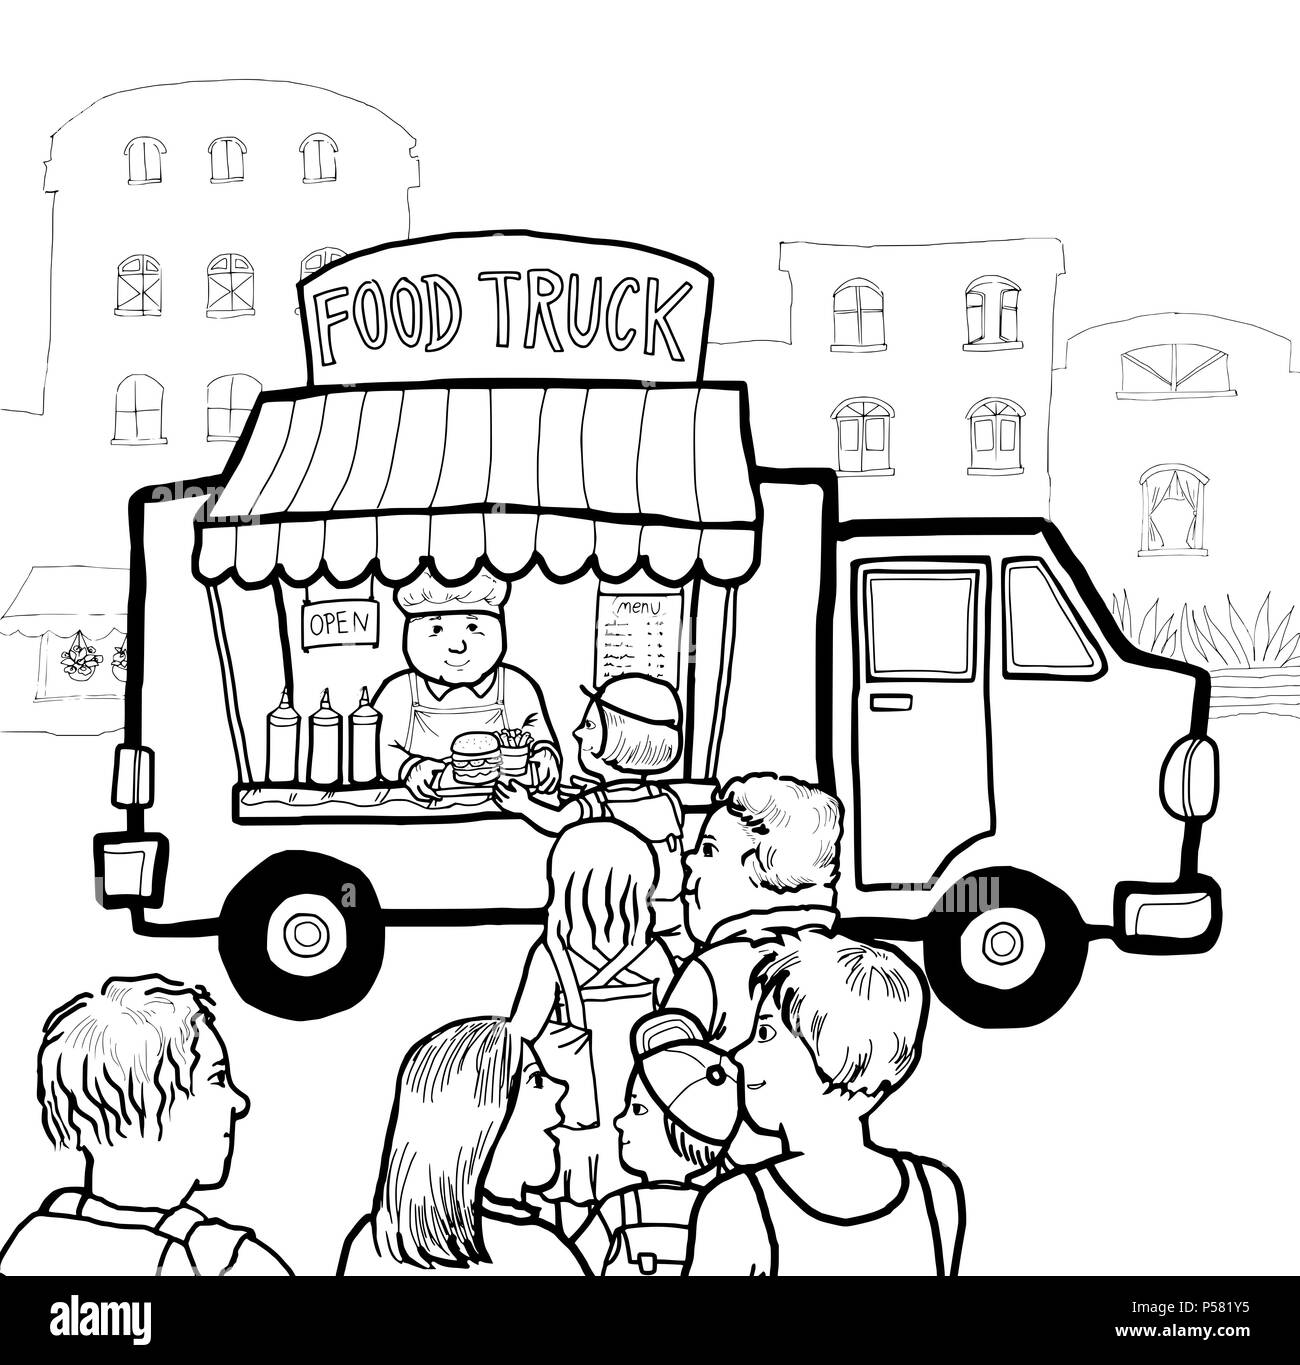 Food Truck Black and White Stock Photos & Images - Alamy